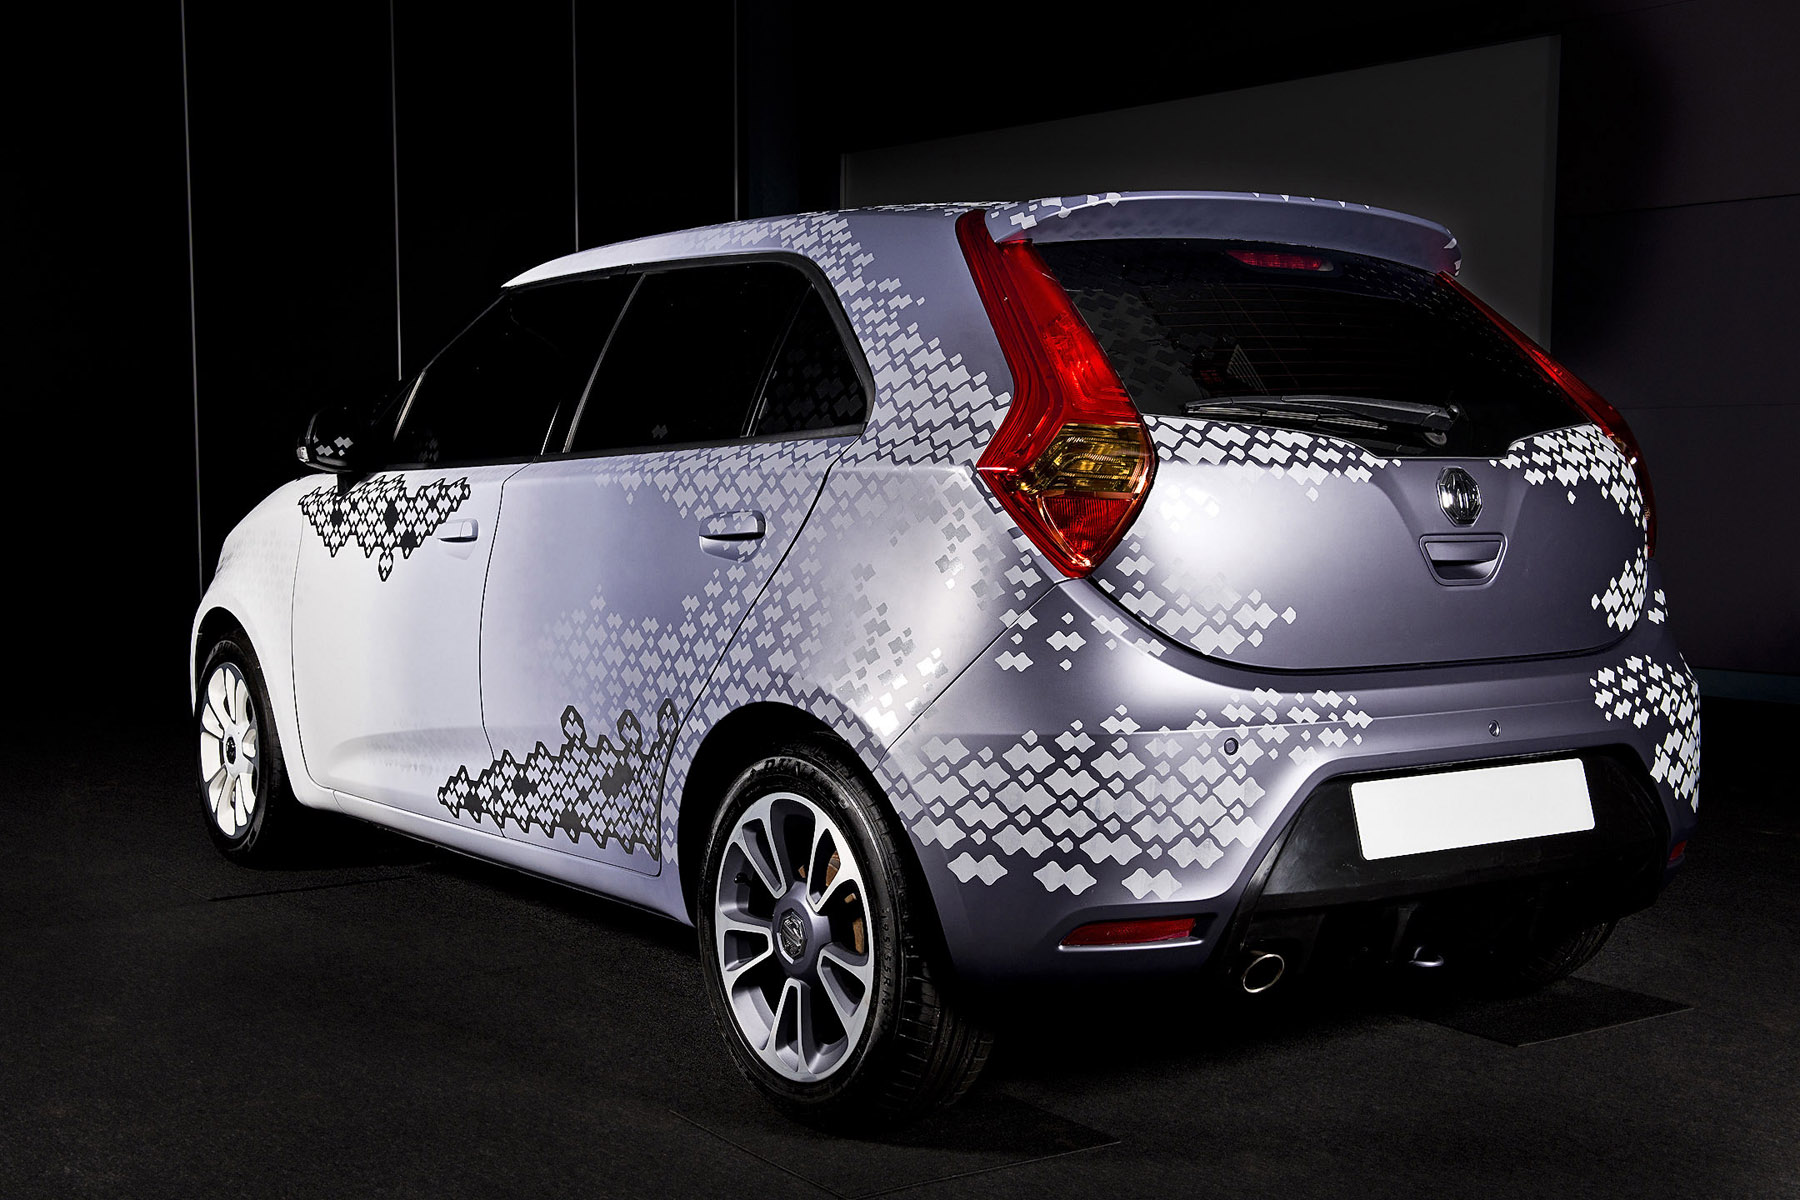 2014 MG MG3 Personalisation Design Concept